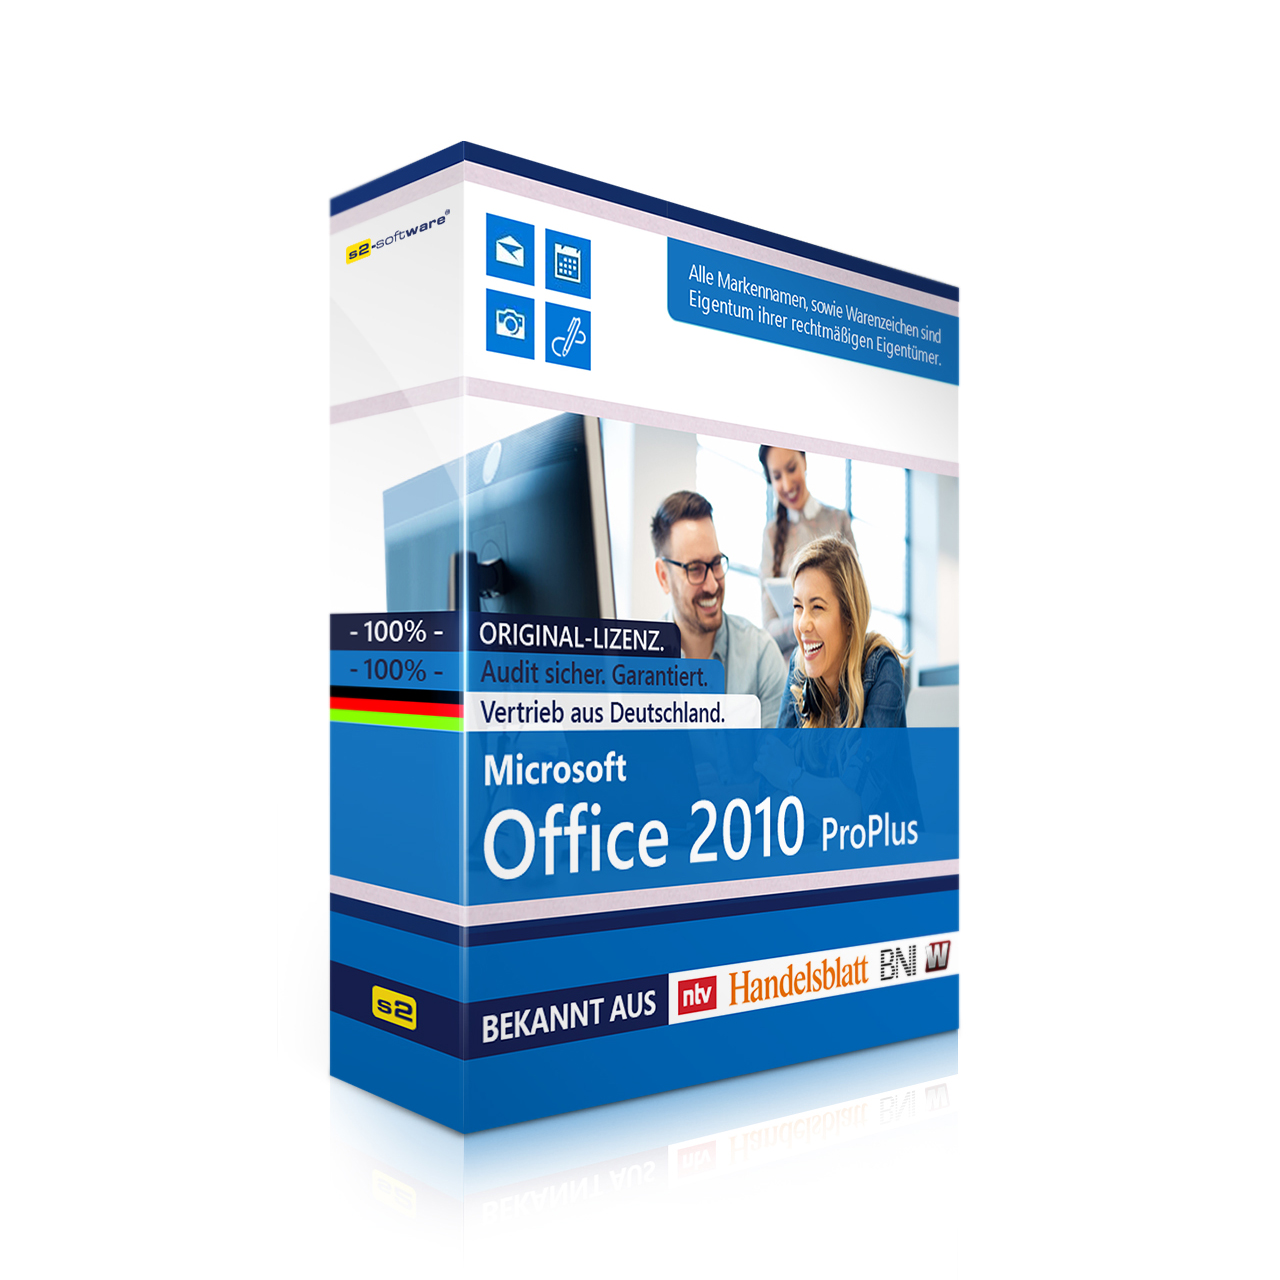 Office 2010 Pro Plus Microsoft Office 2010 Microsoft Office S2 Software